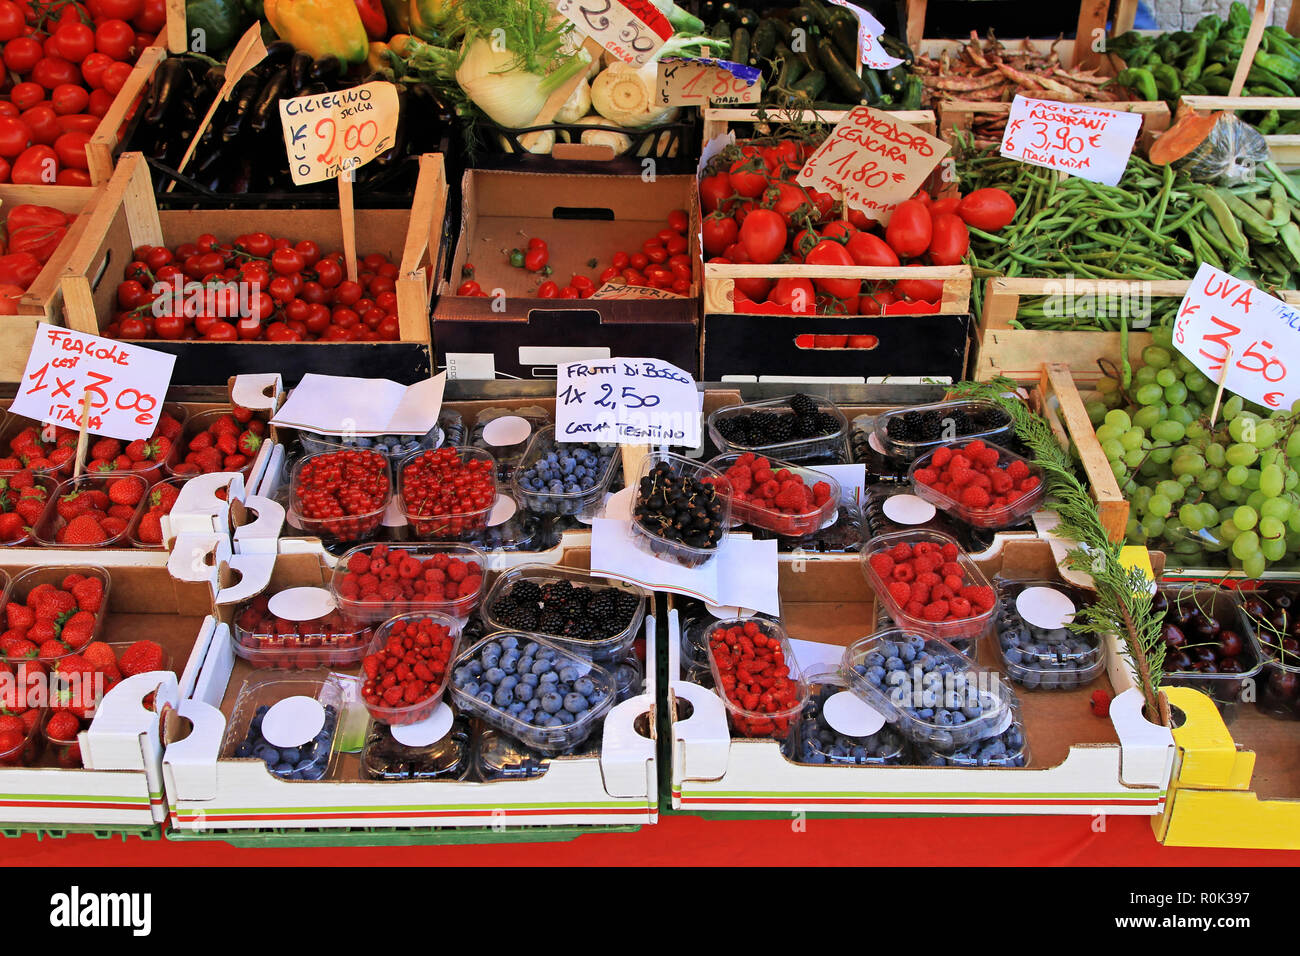 Big farmers market stall filled with organic fruits - Stock Image